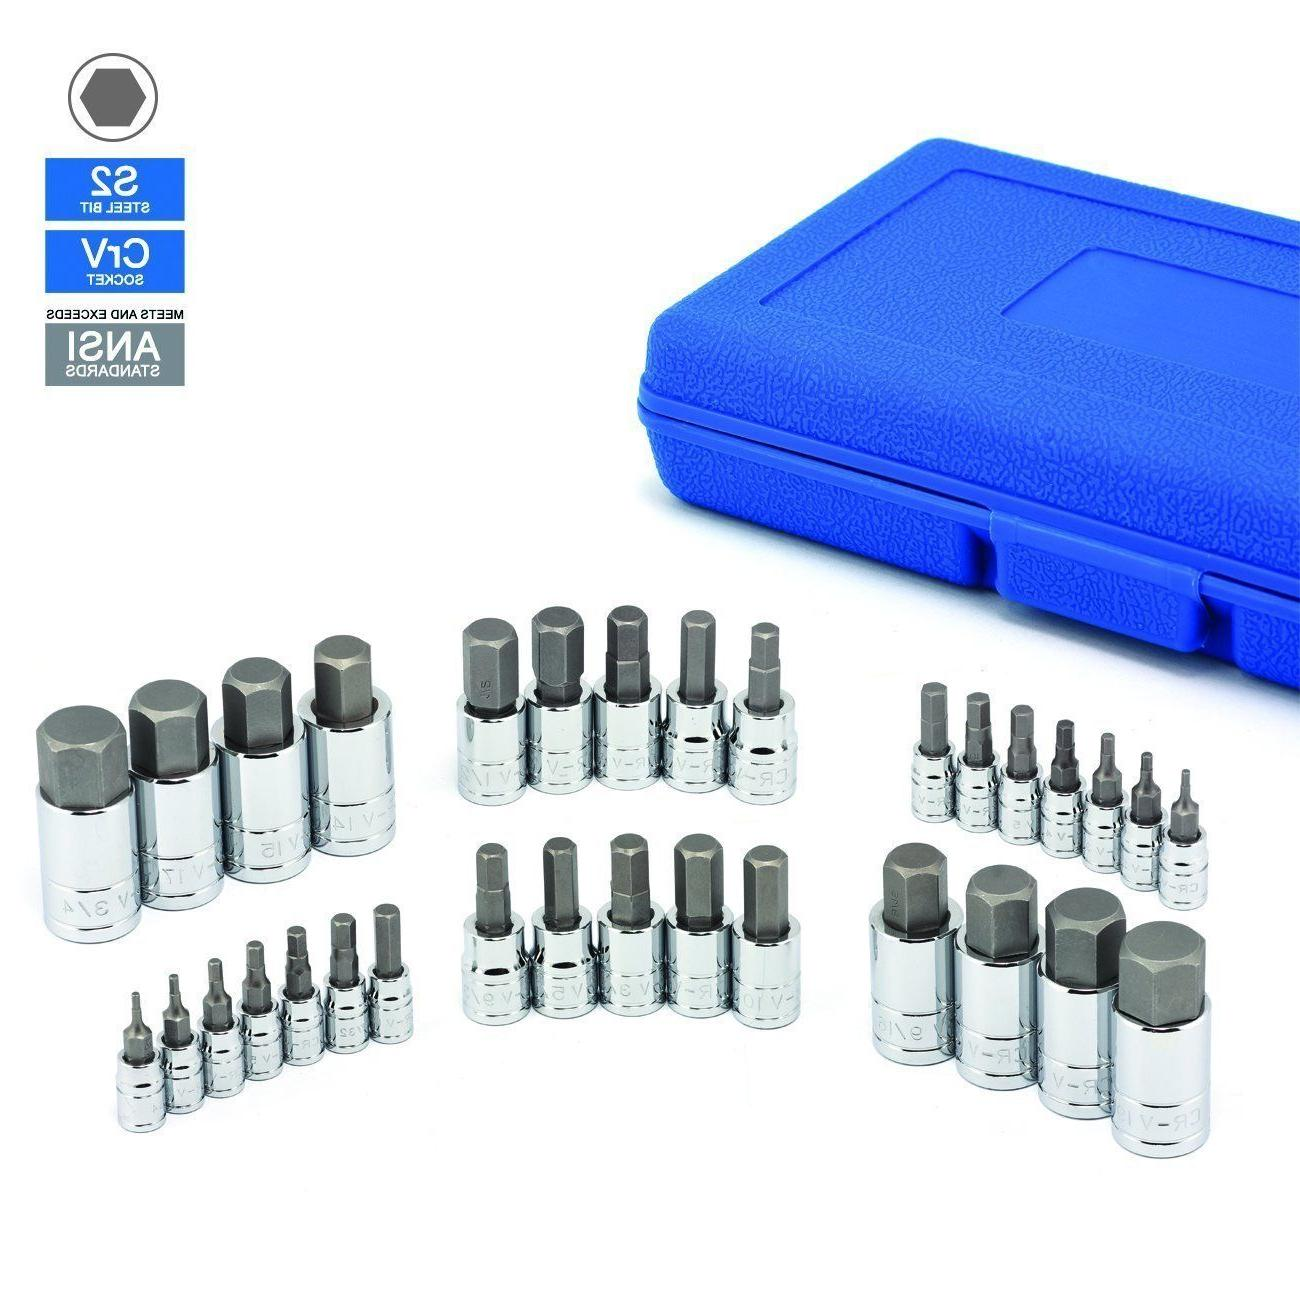 32 PC WRENCH KEY FOR TOOL METRIC SET